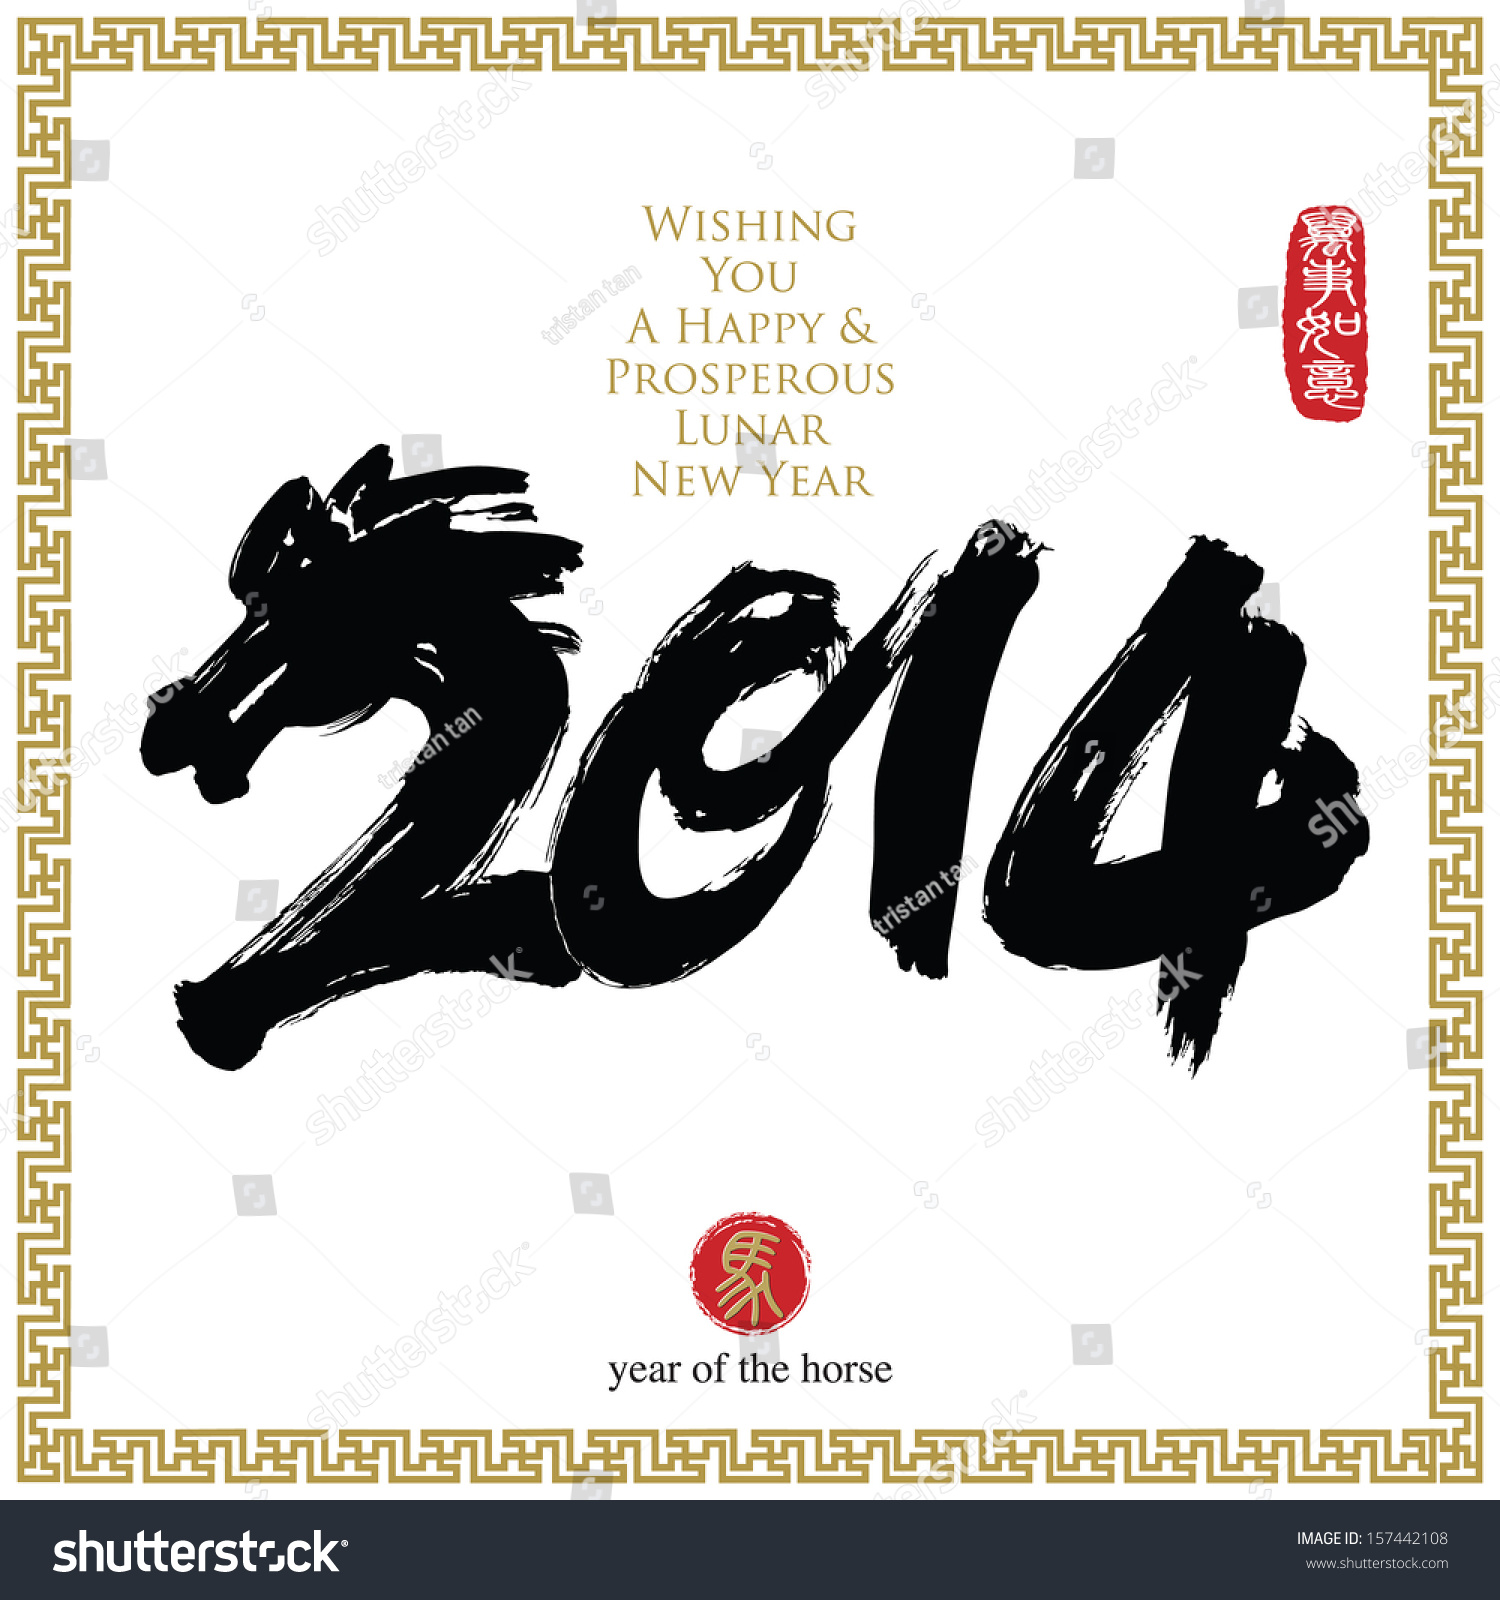 Wishing You Happy Prosperous Lunar New Stock Vector (Royalty Free ...